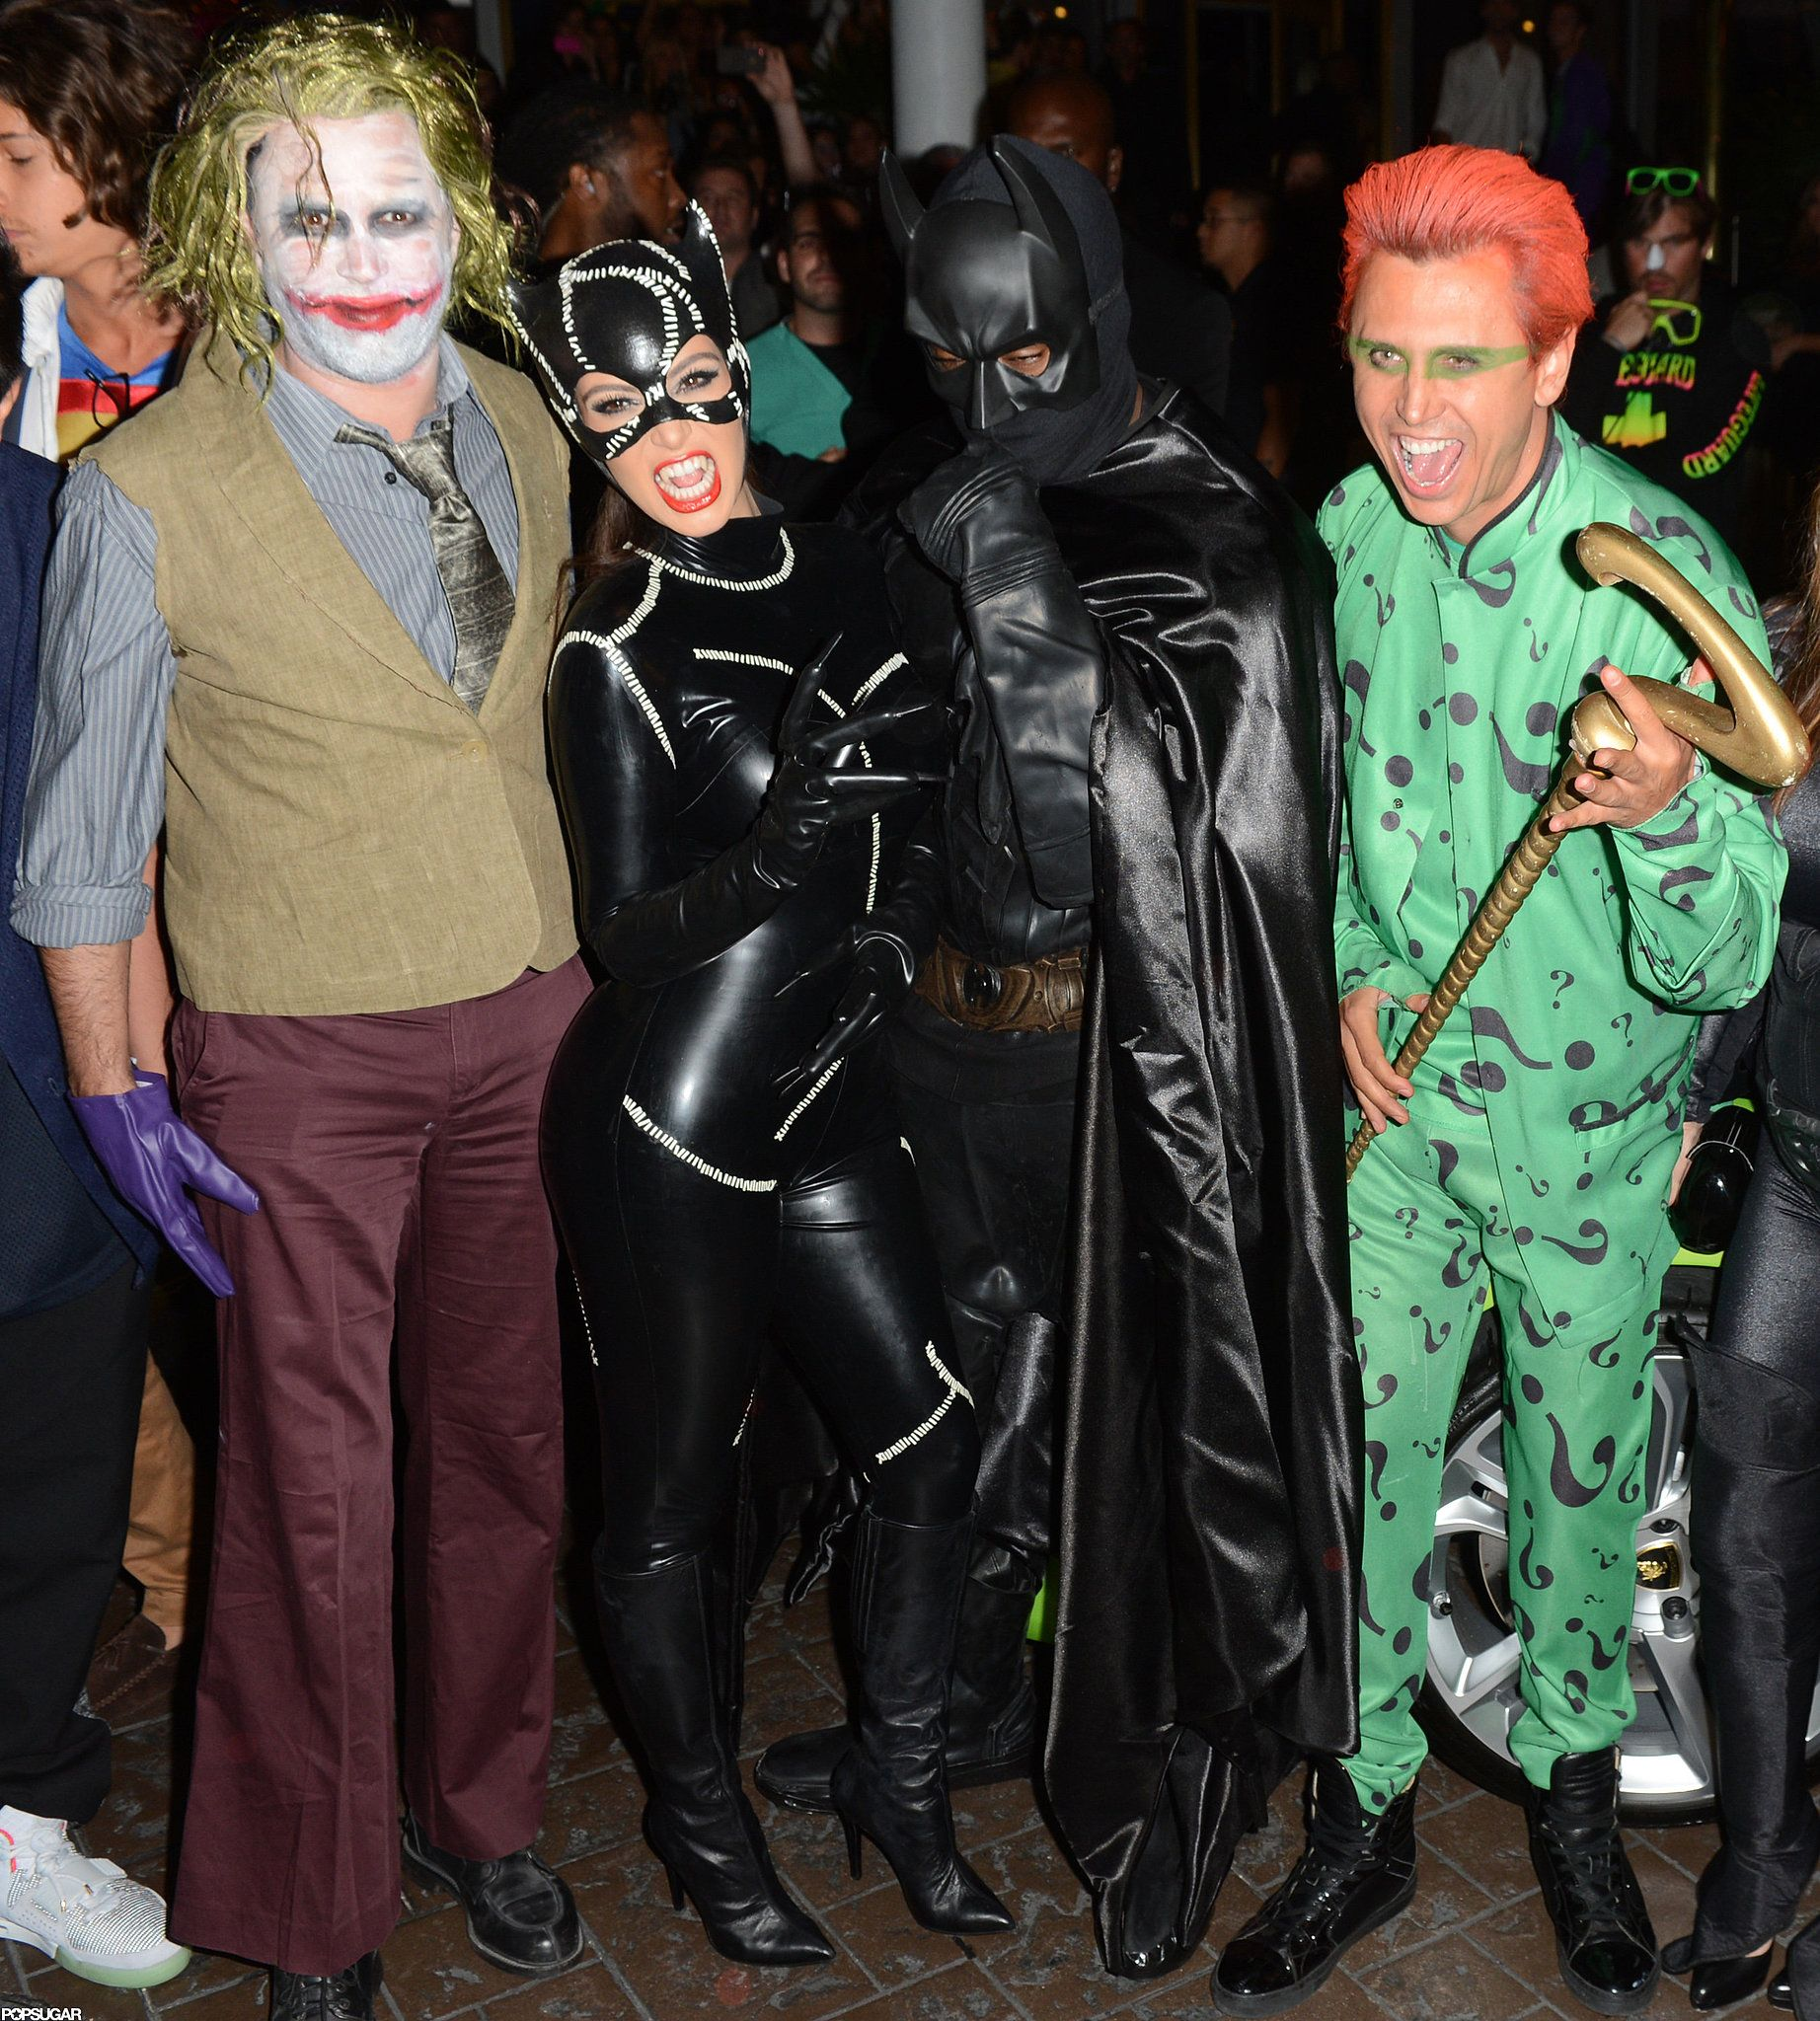 Over 250 Celebrity Halloween Costumes! | Catwoman